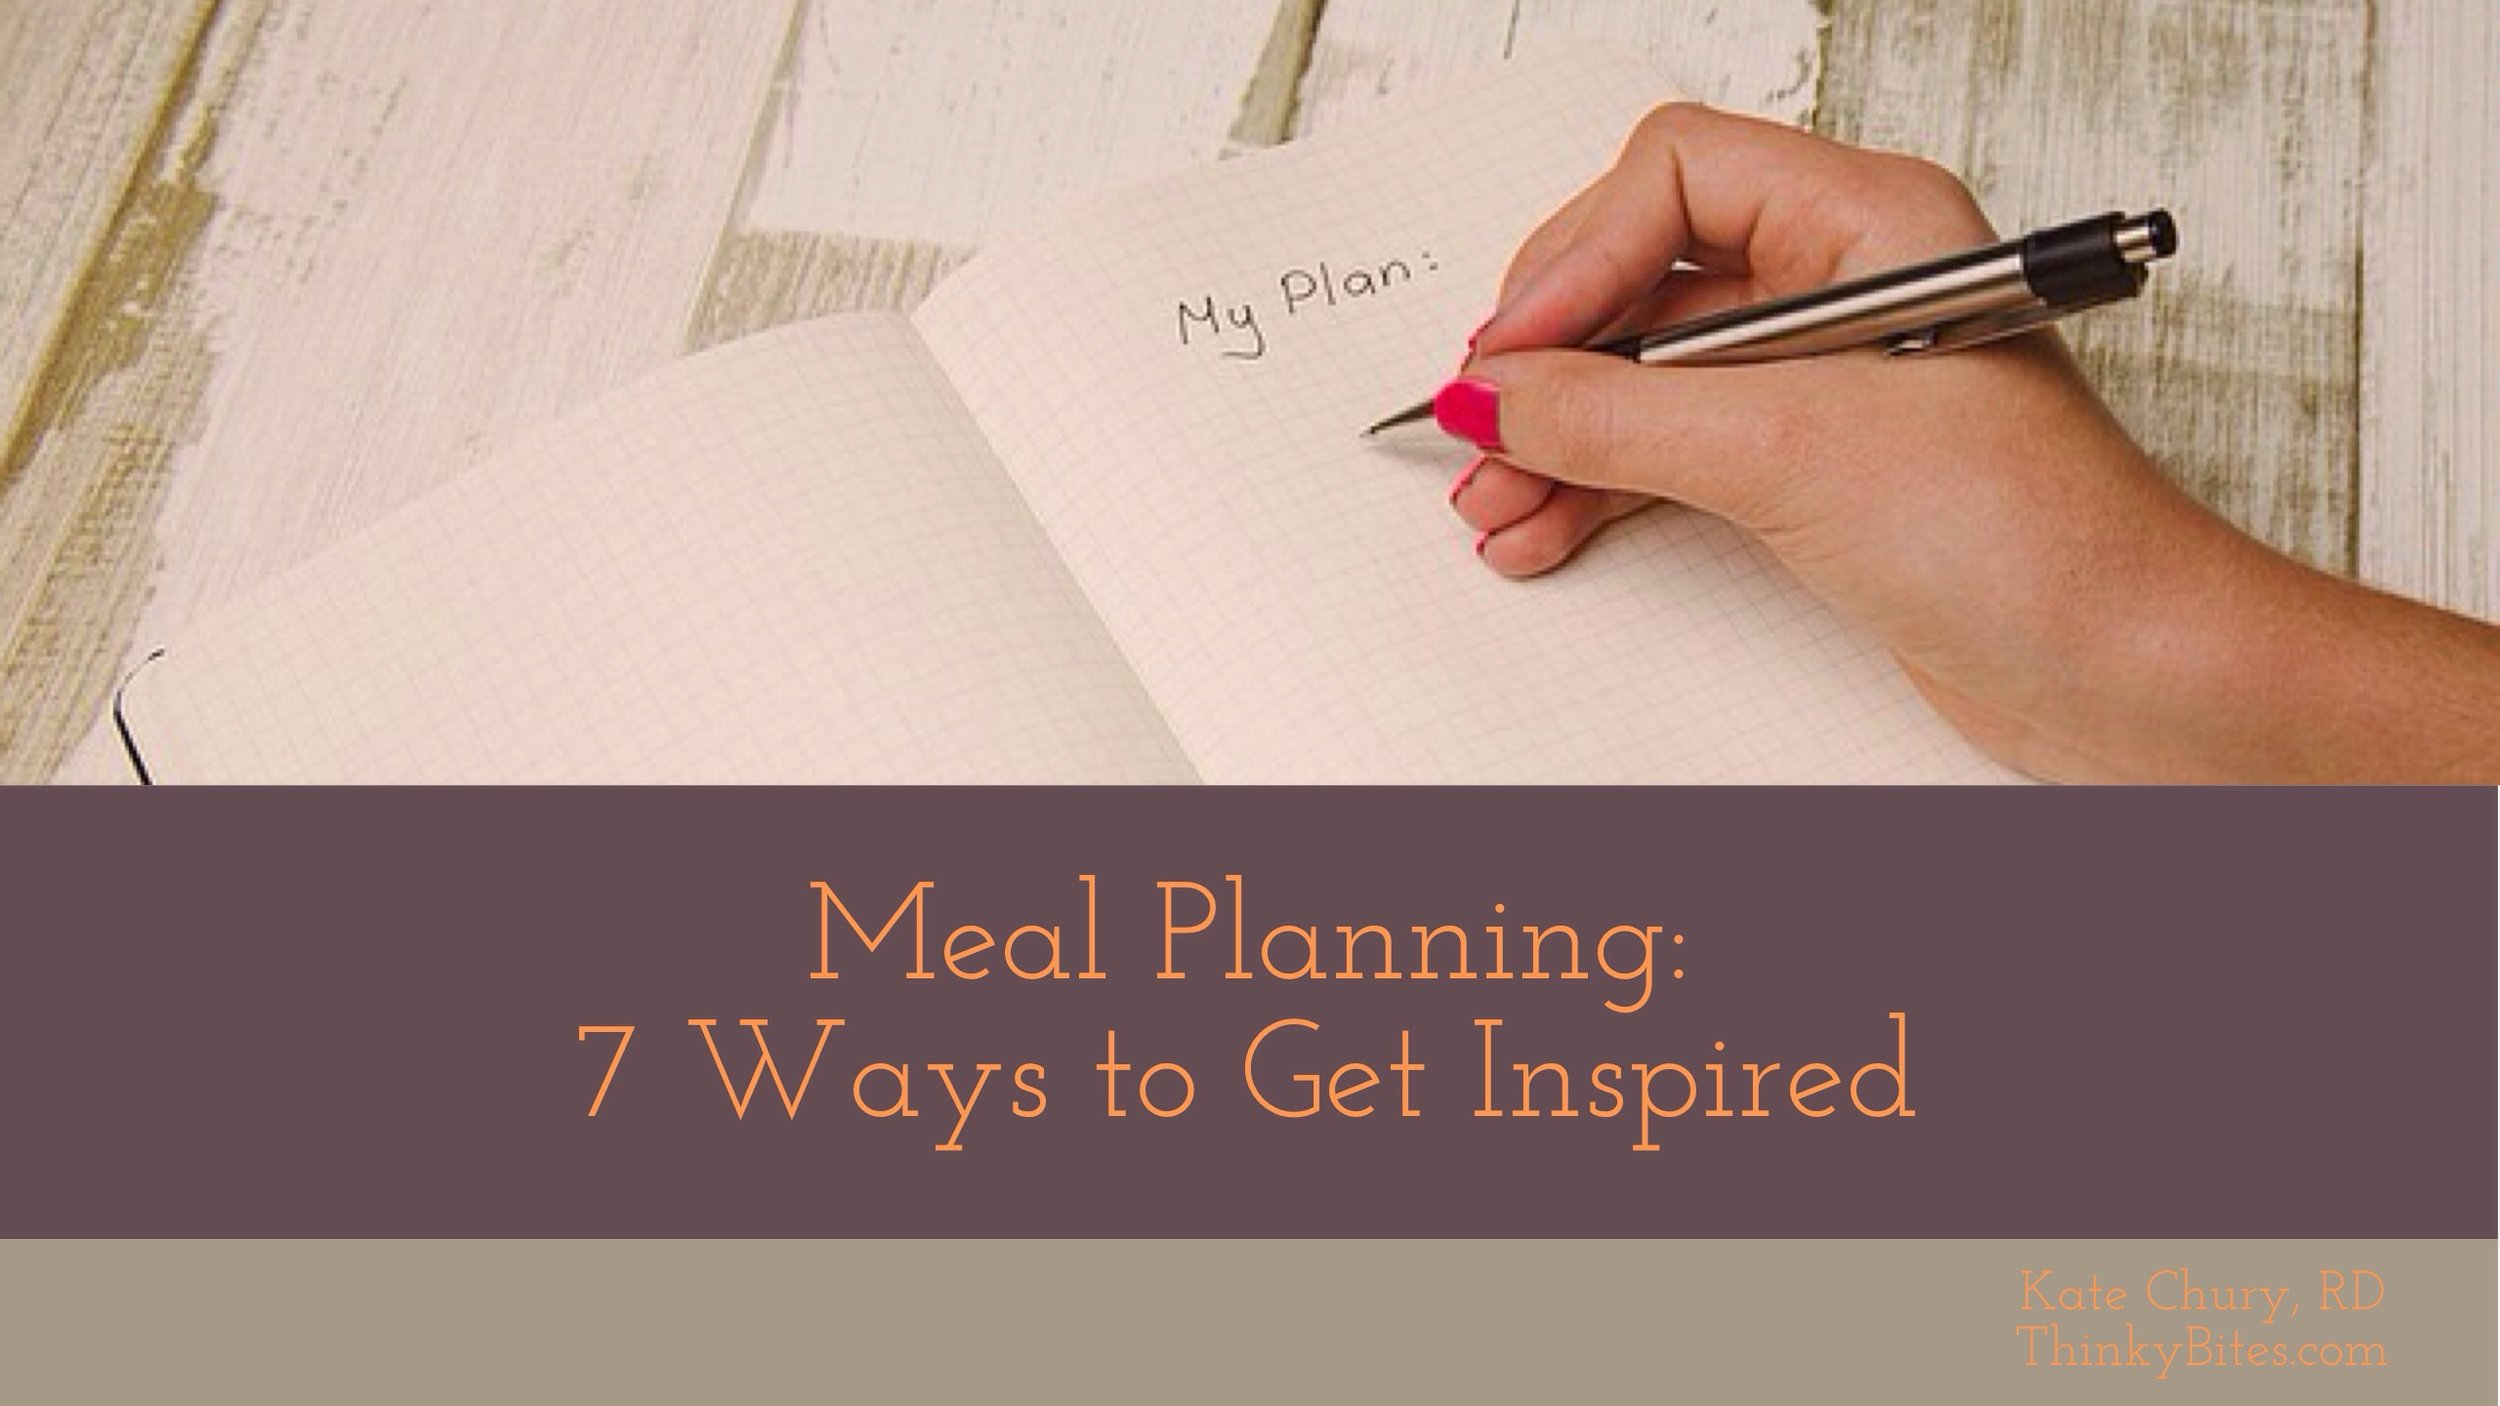 Meal Planning Inspiration Dietitian Calgary.JPG